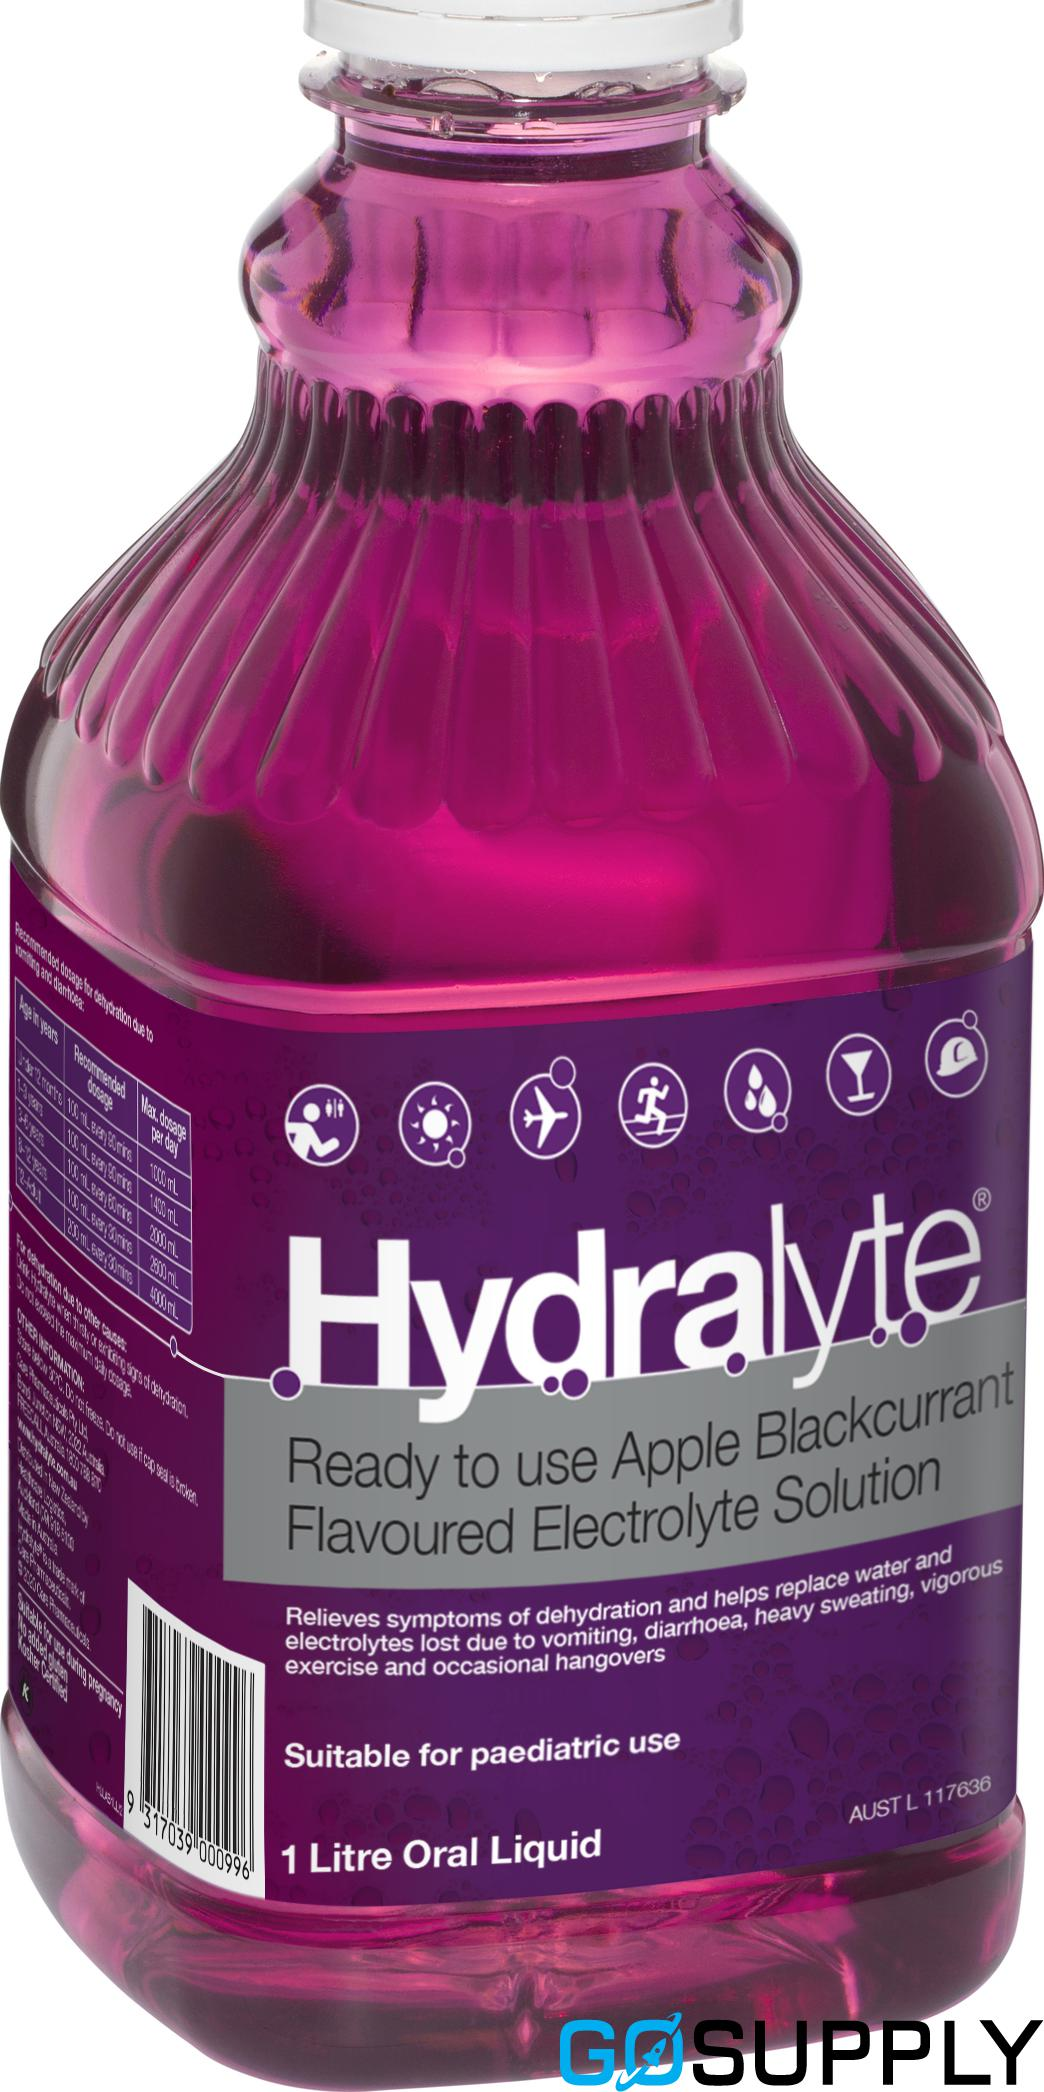 Hydralyte Ready to use Electrolyte Solution Apple Blackcurrant 1L